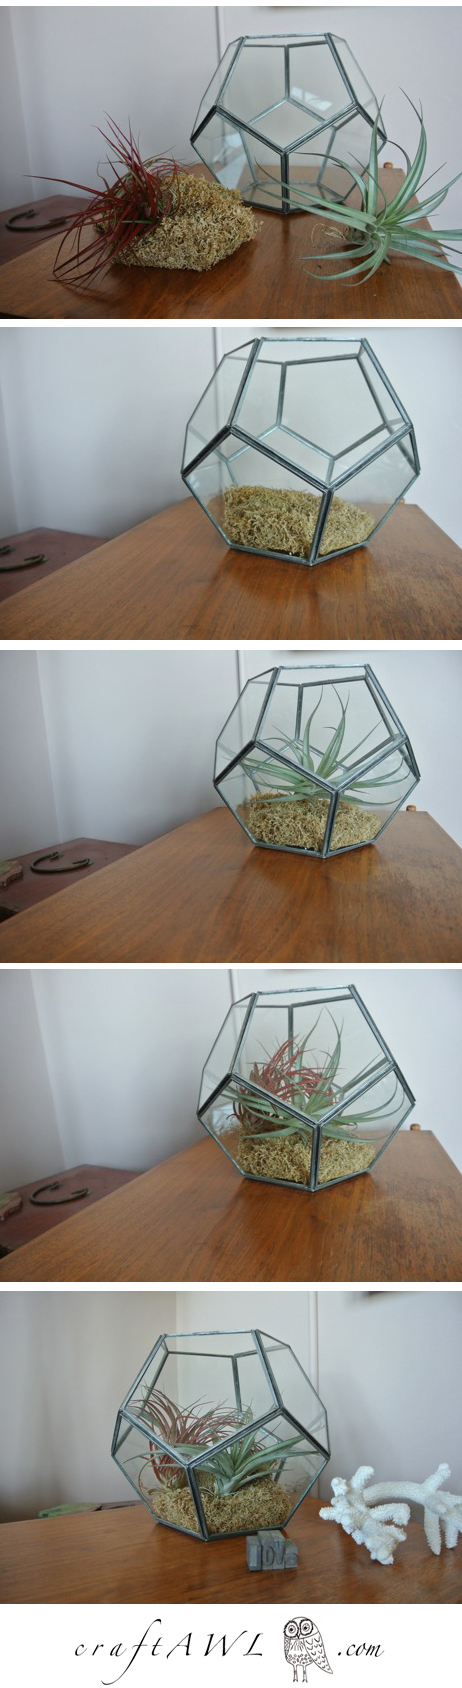 update your home and impress your friends with this step by step photo process for making the easiest terrarium ever